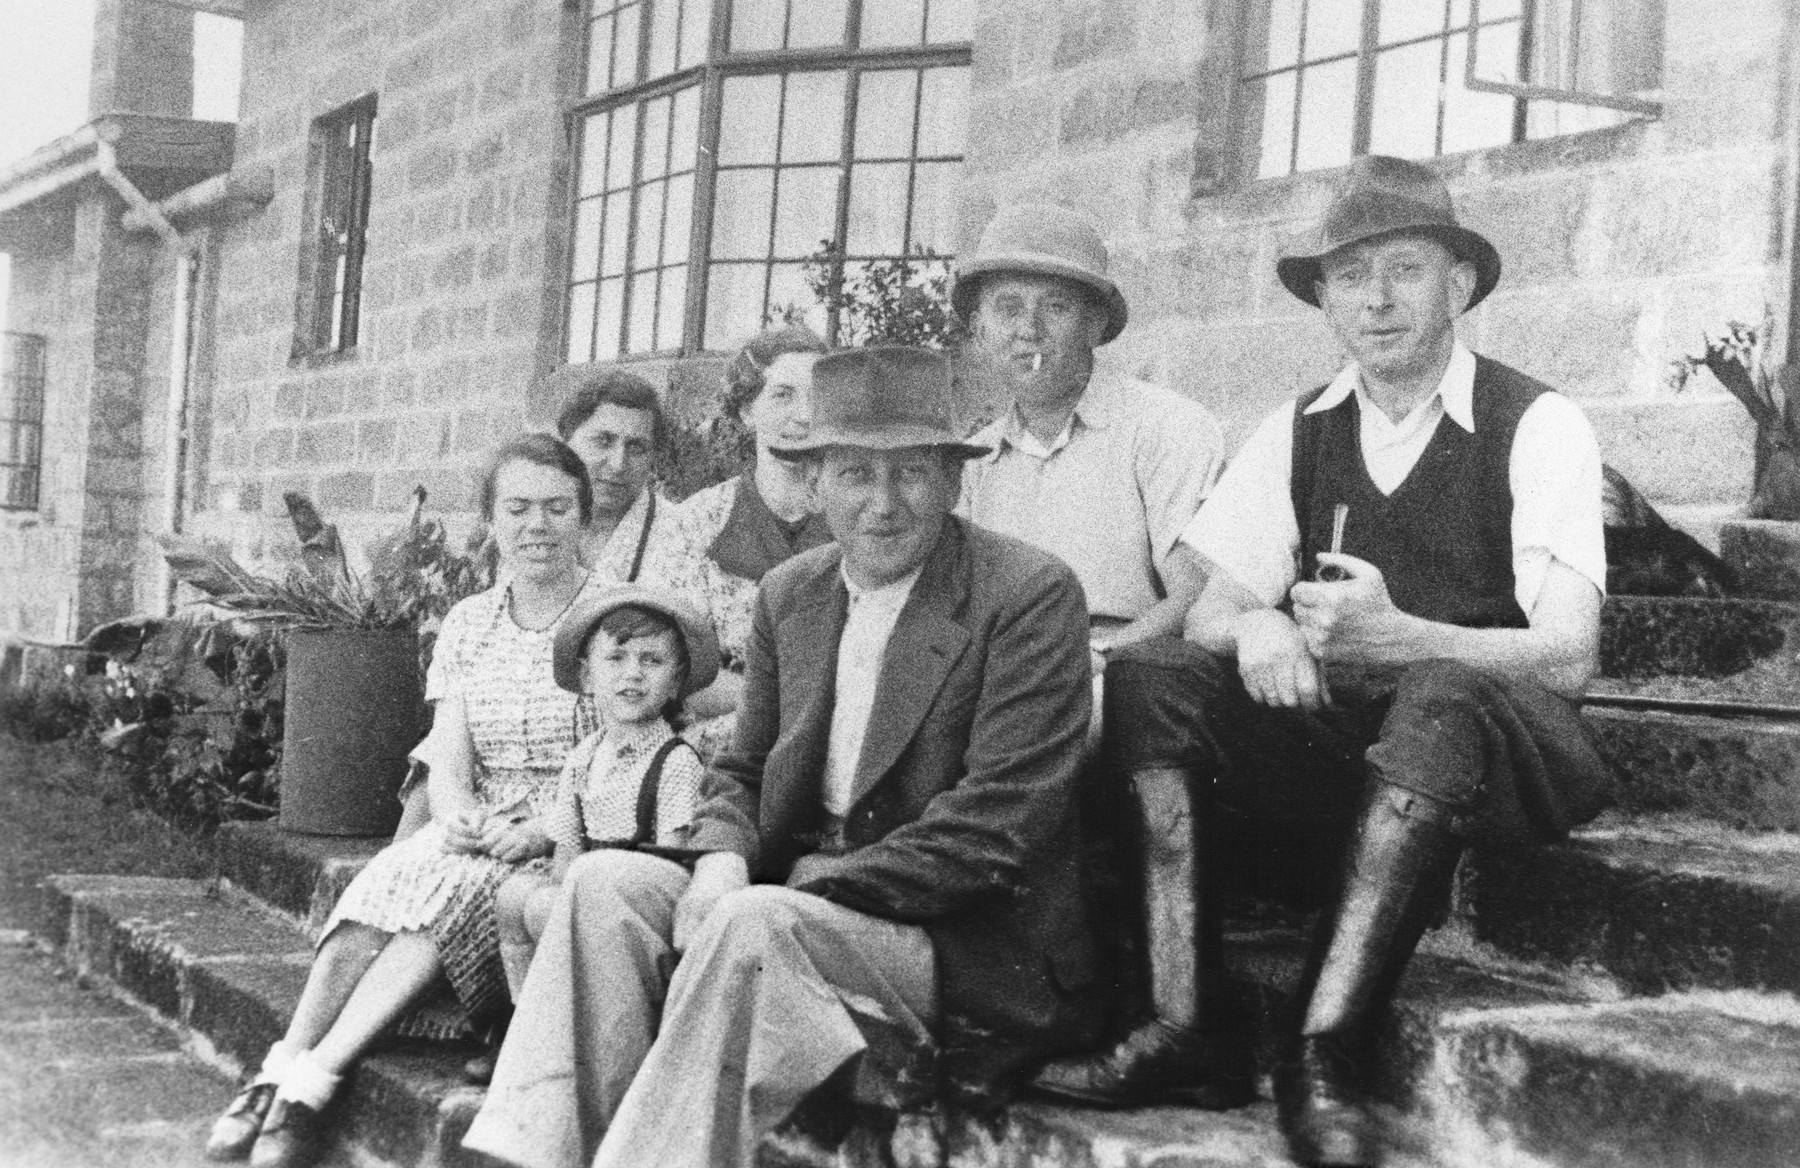 Group portrait of members of the extended Berg family outside their home near Limuru, Kenya (Kiambu district), where they found refuge during World War II.  Pictured in the front row are Rosel and Karl Berg with their son Egon between them.  Seated in the back row, from left to right, are Sara, Else, Ernest and Josef Berg.